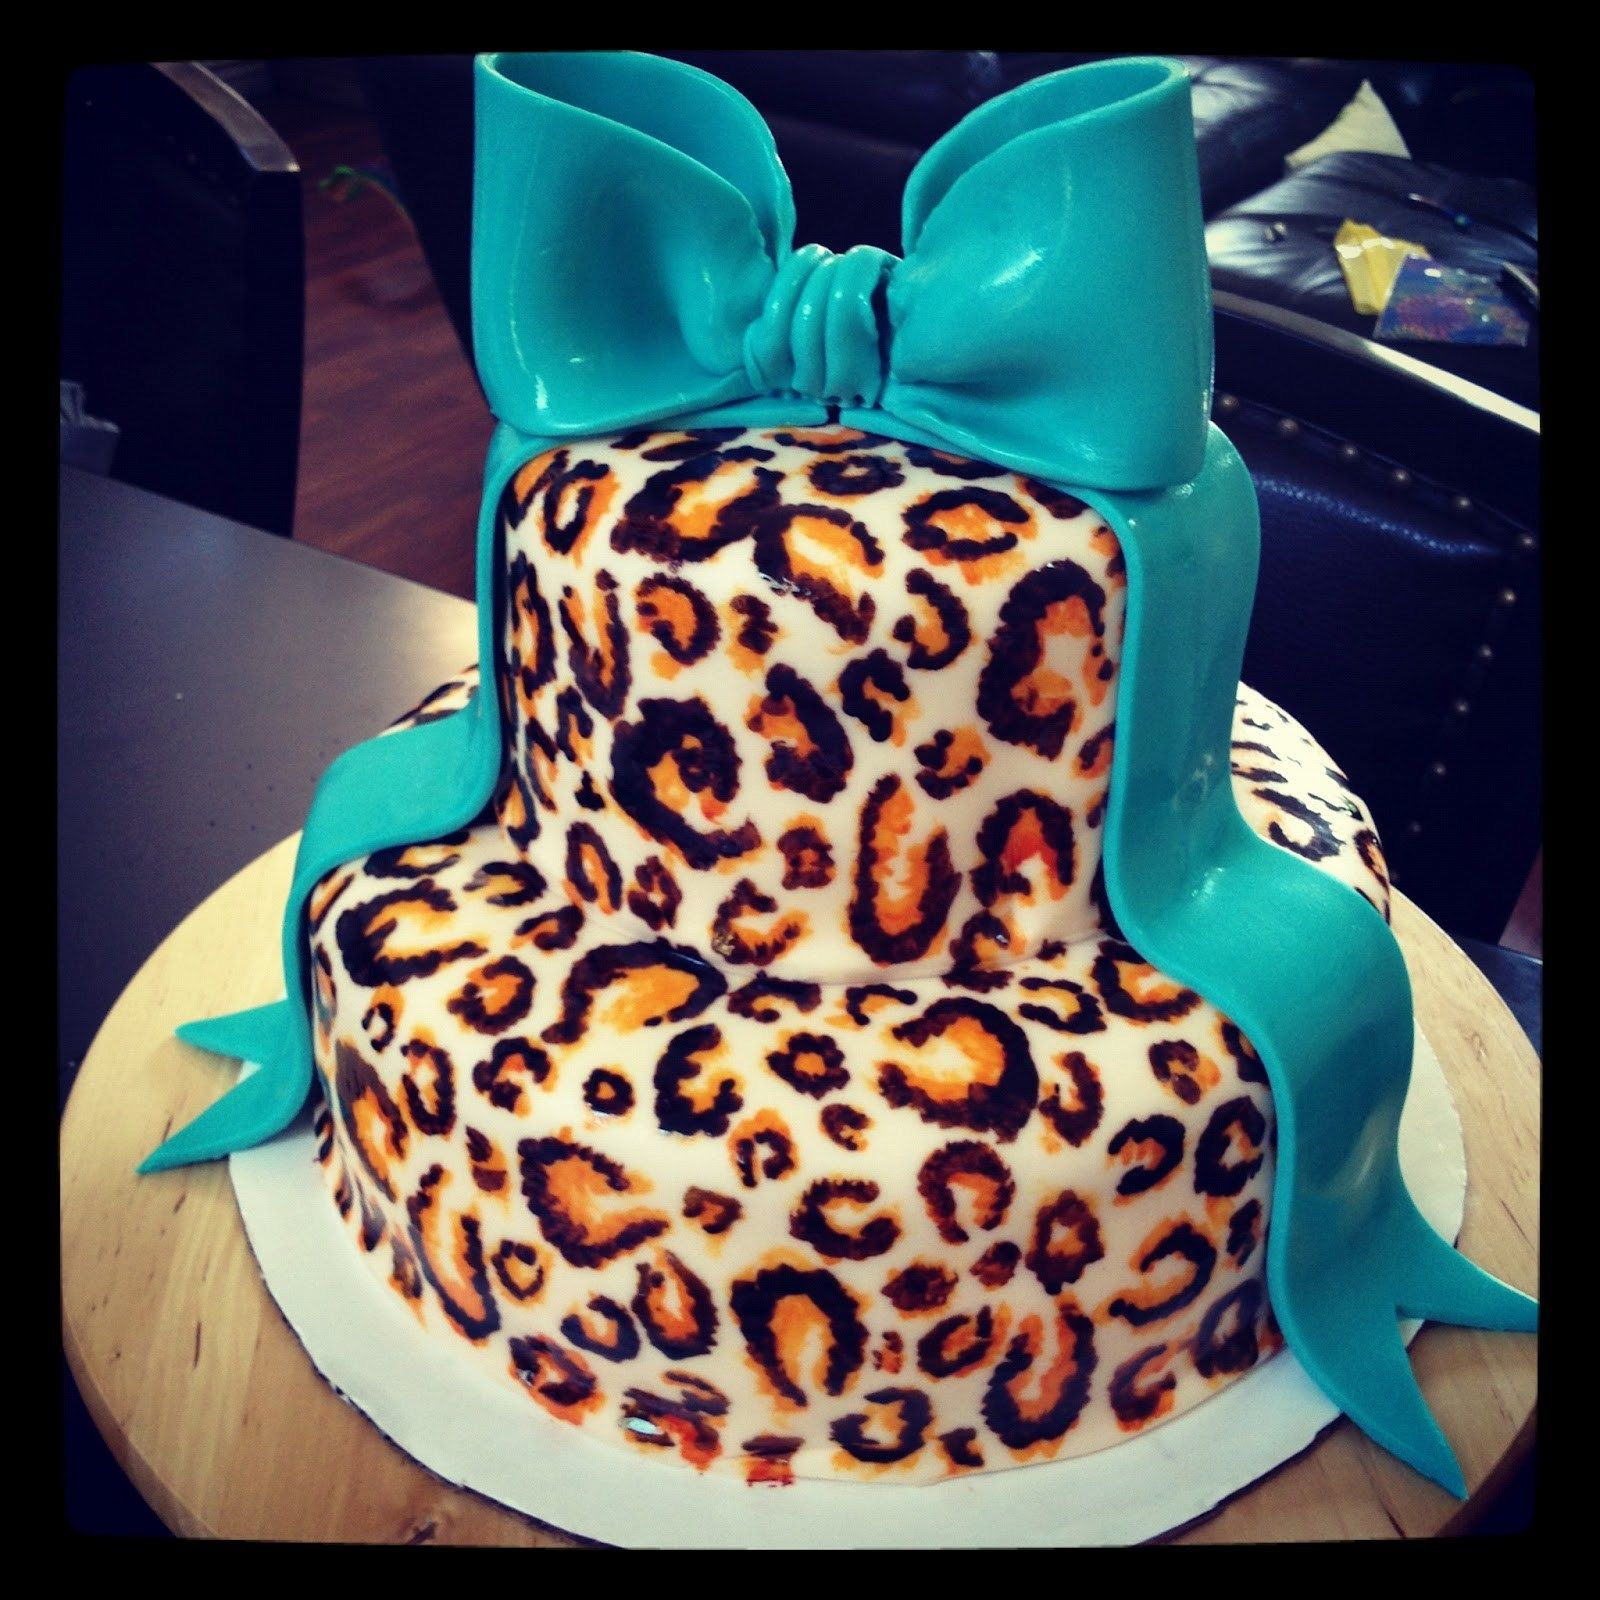 Magnificent 25 Marvelous Photo Of Cheetah Birthday Cake With Images Personalised Birthday Cards Petedlily Jamesorg